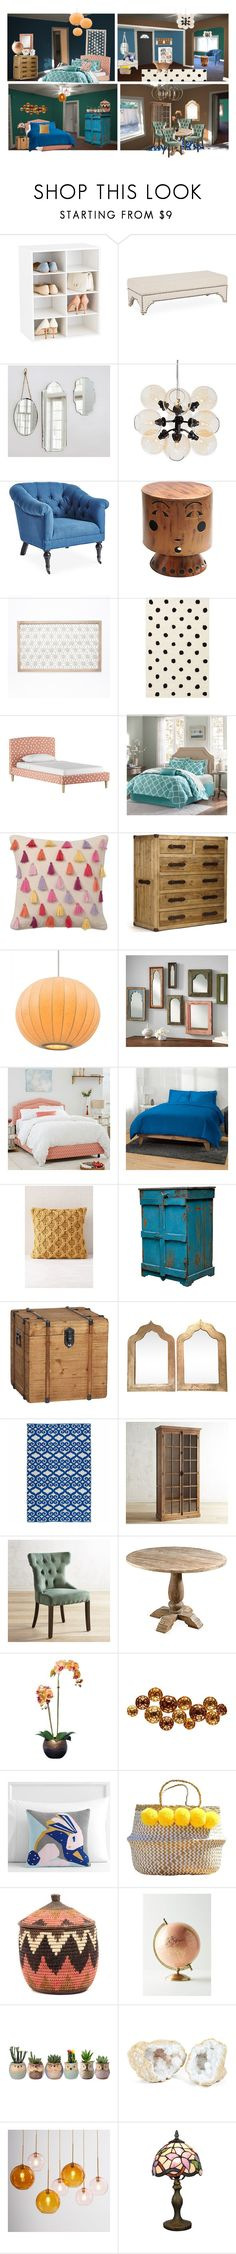 """""""Santorini Blue, Ionian, Sun Bleached Ochre, Silverplate"""" by flapper-shoes ❤ liked on Polyvore featuring interior, interiors, interior design, home, home decor, interior decorating, Pottery Barn, Basset Mirror Company, West Elm and PBteen"""